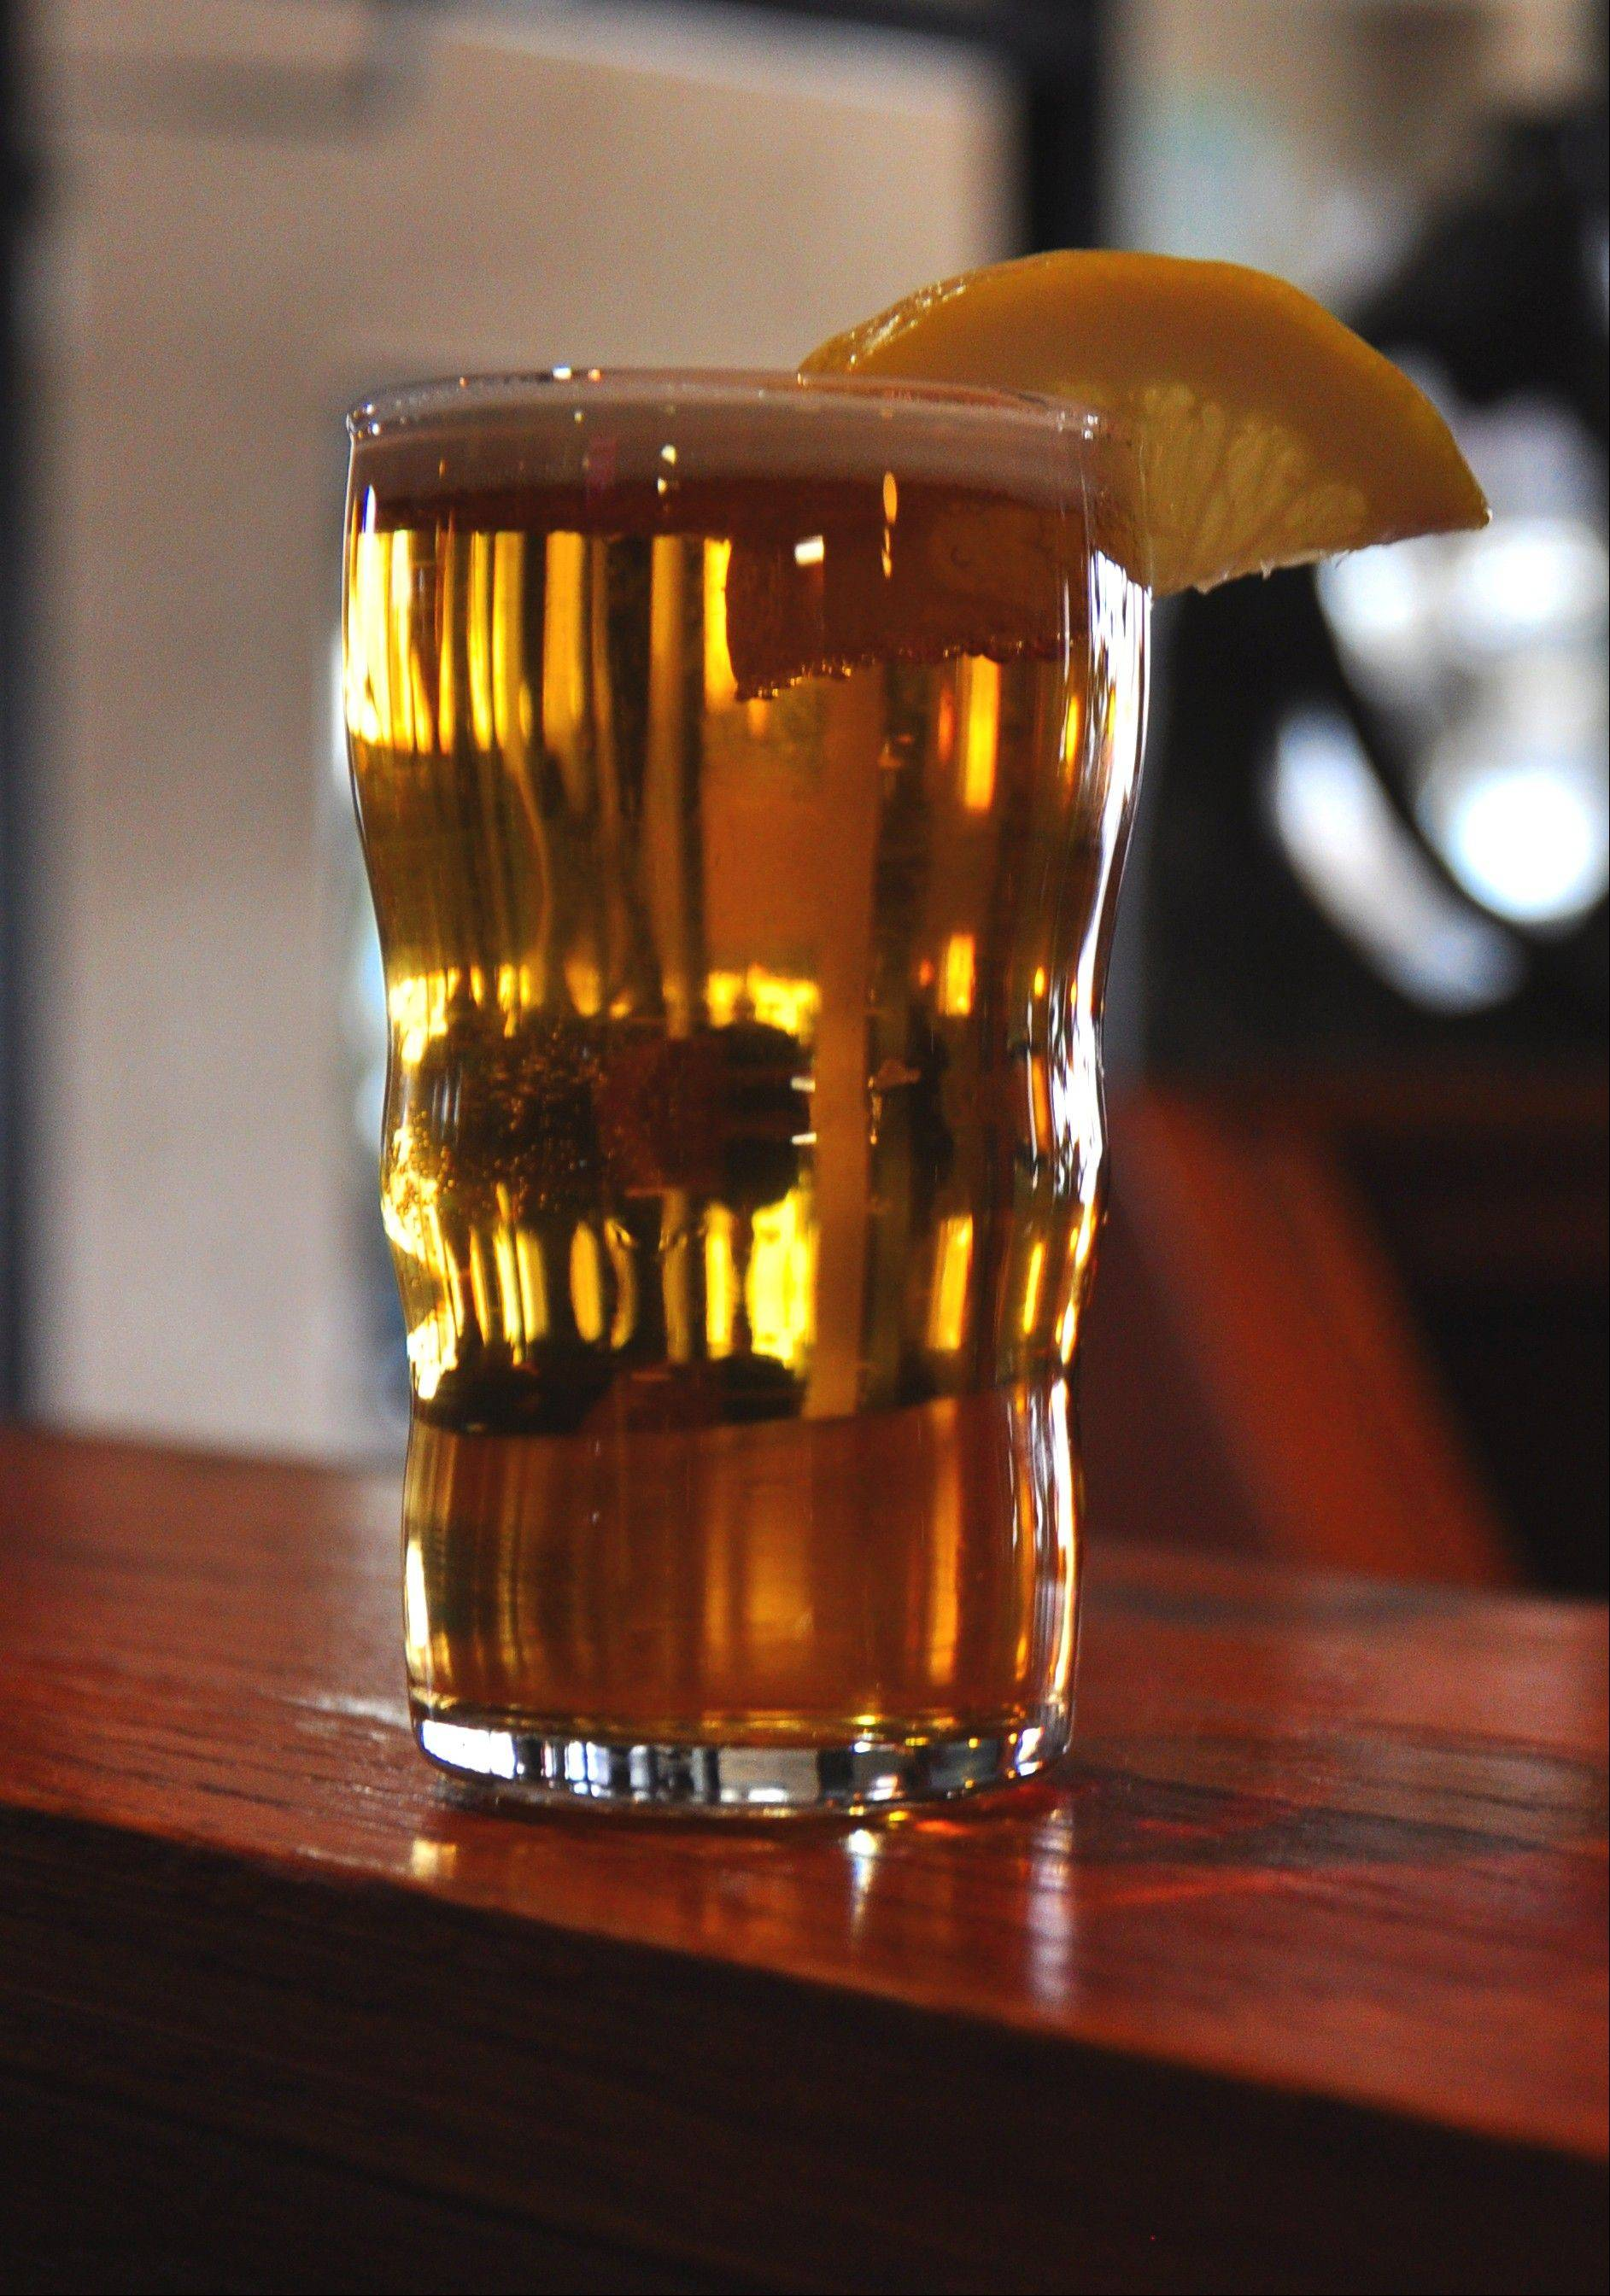 Wigged Pig Wheat beer is served with a slice of lemon. It's one of several craft beers made at the Blue Cat Brew Pub in Rock Island.